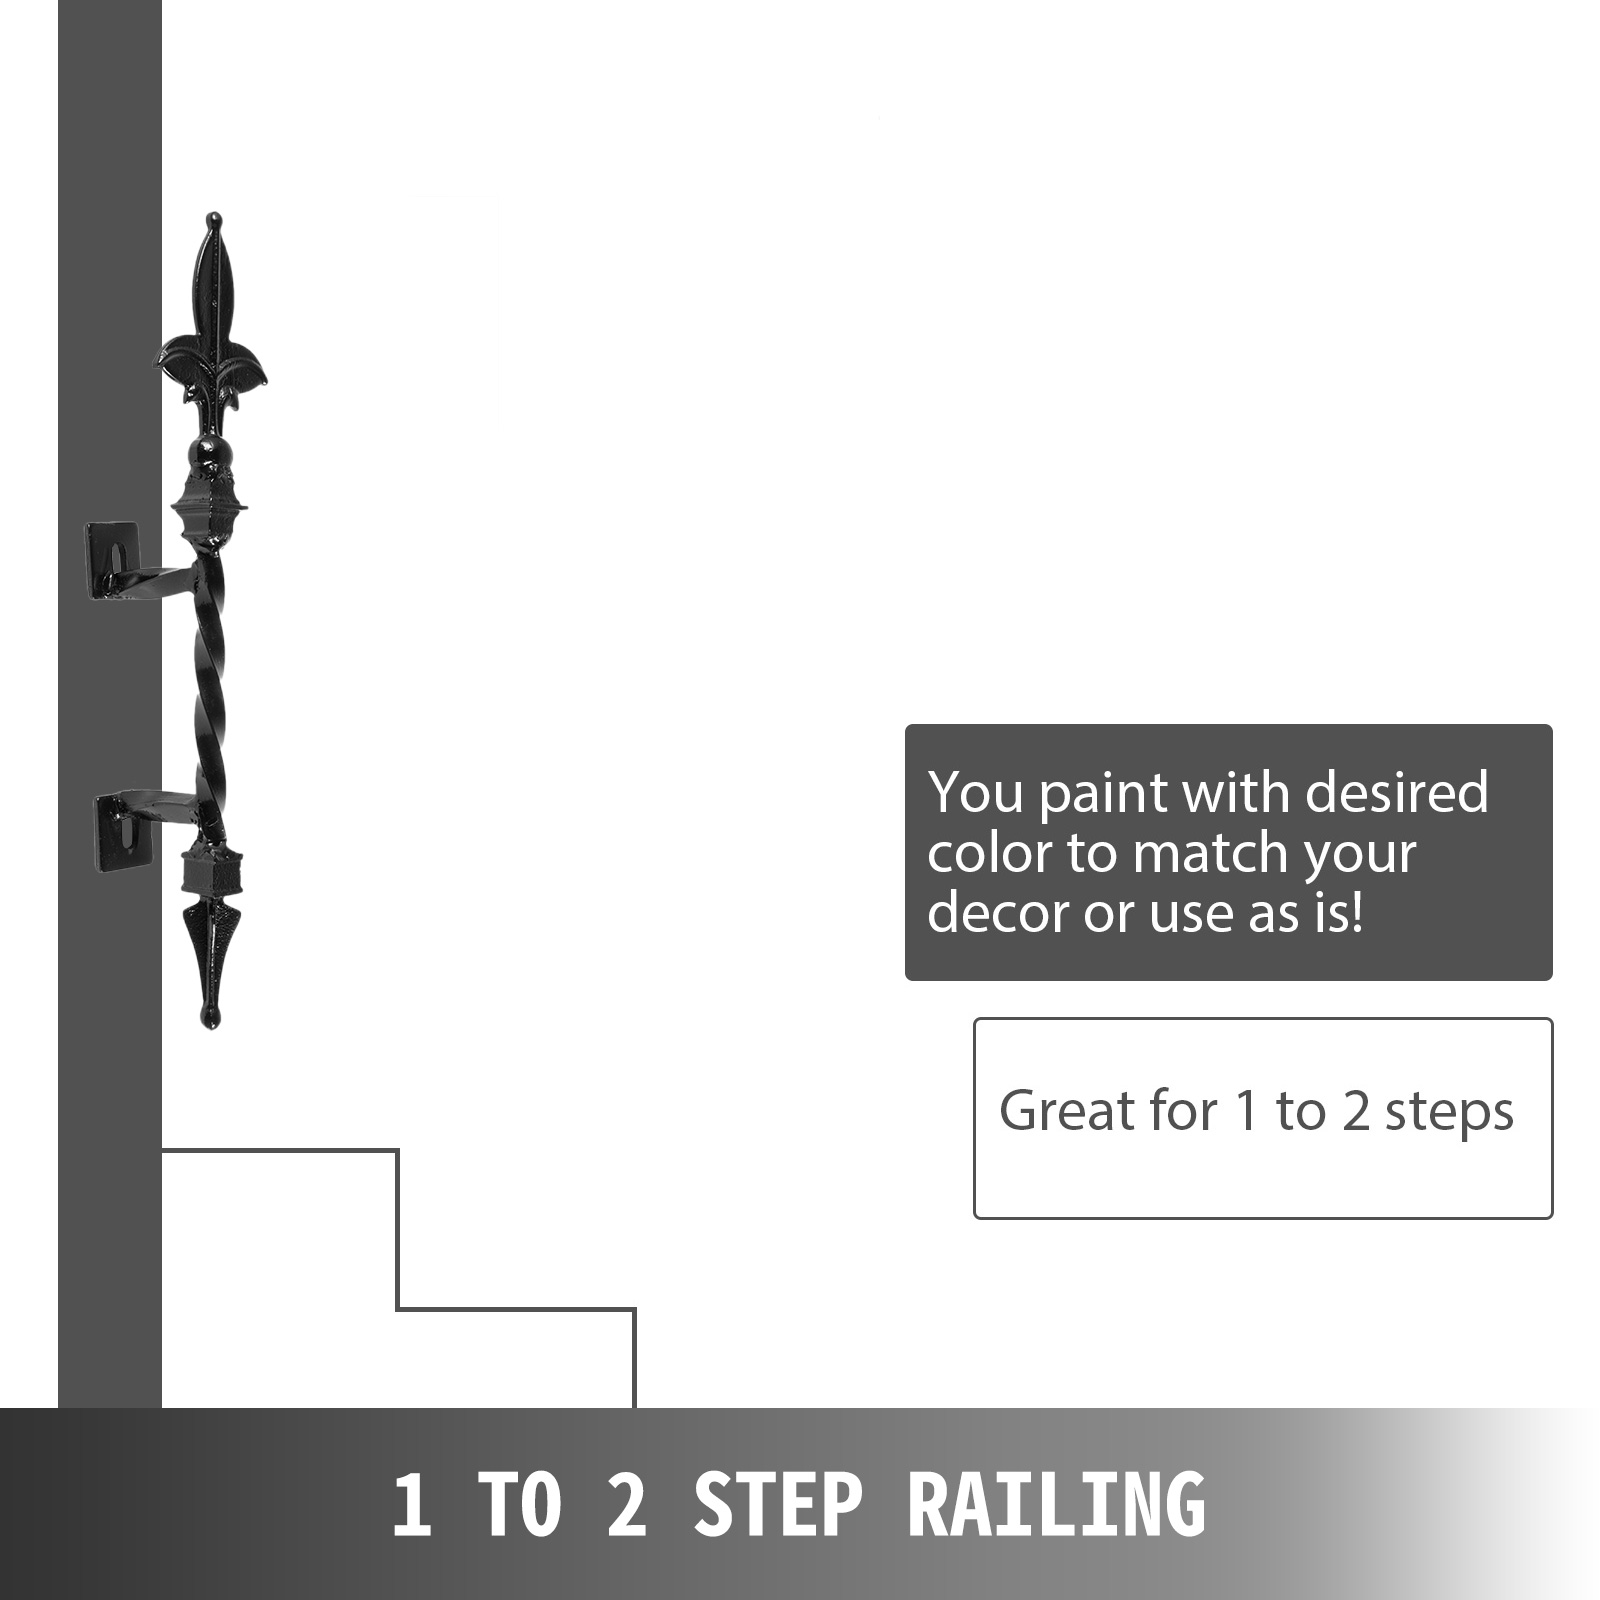 Handrails-for-Outdoor-Step-Wrought-Iron-Handrail-20-034-Length-Porch-Deck-Railing thumbnail 51